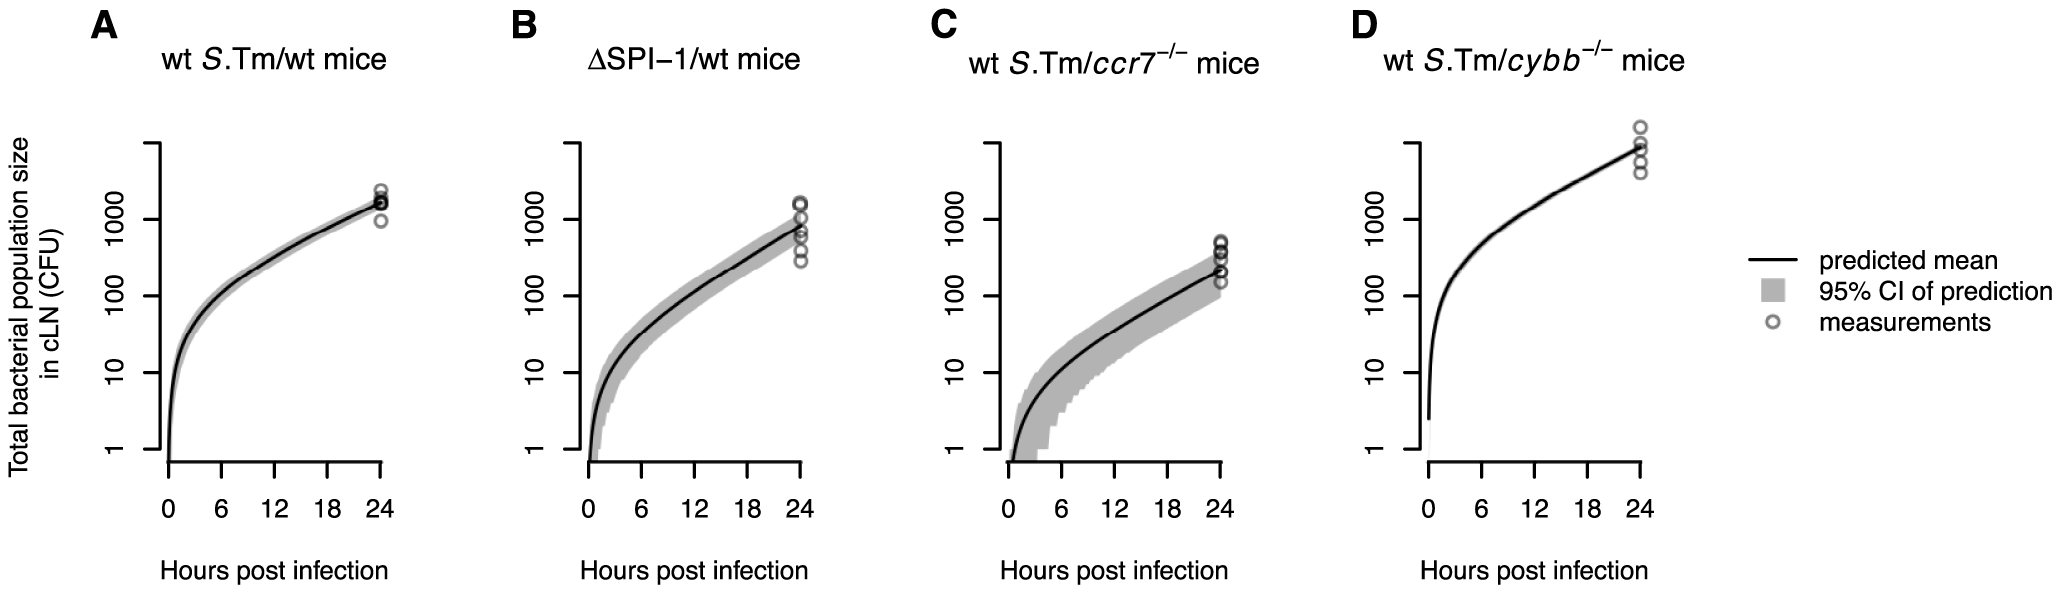 The WITS-based model predictions are consistent with the total bacterial population size measured in the cLN.